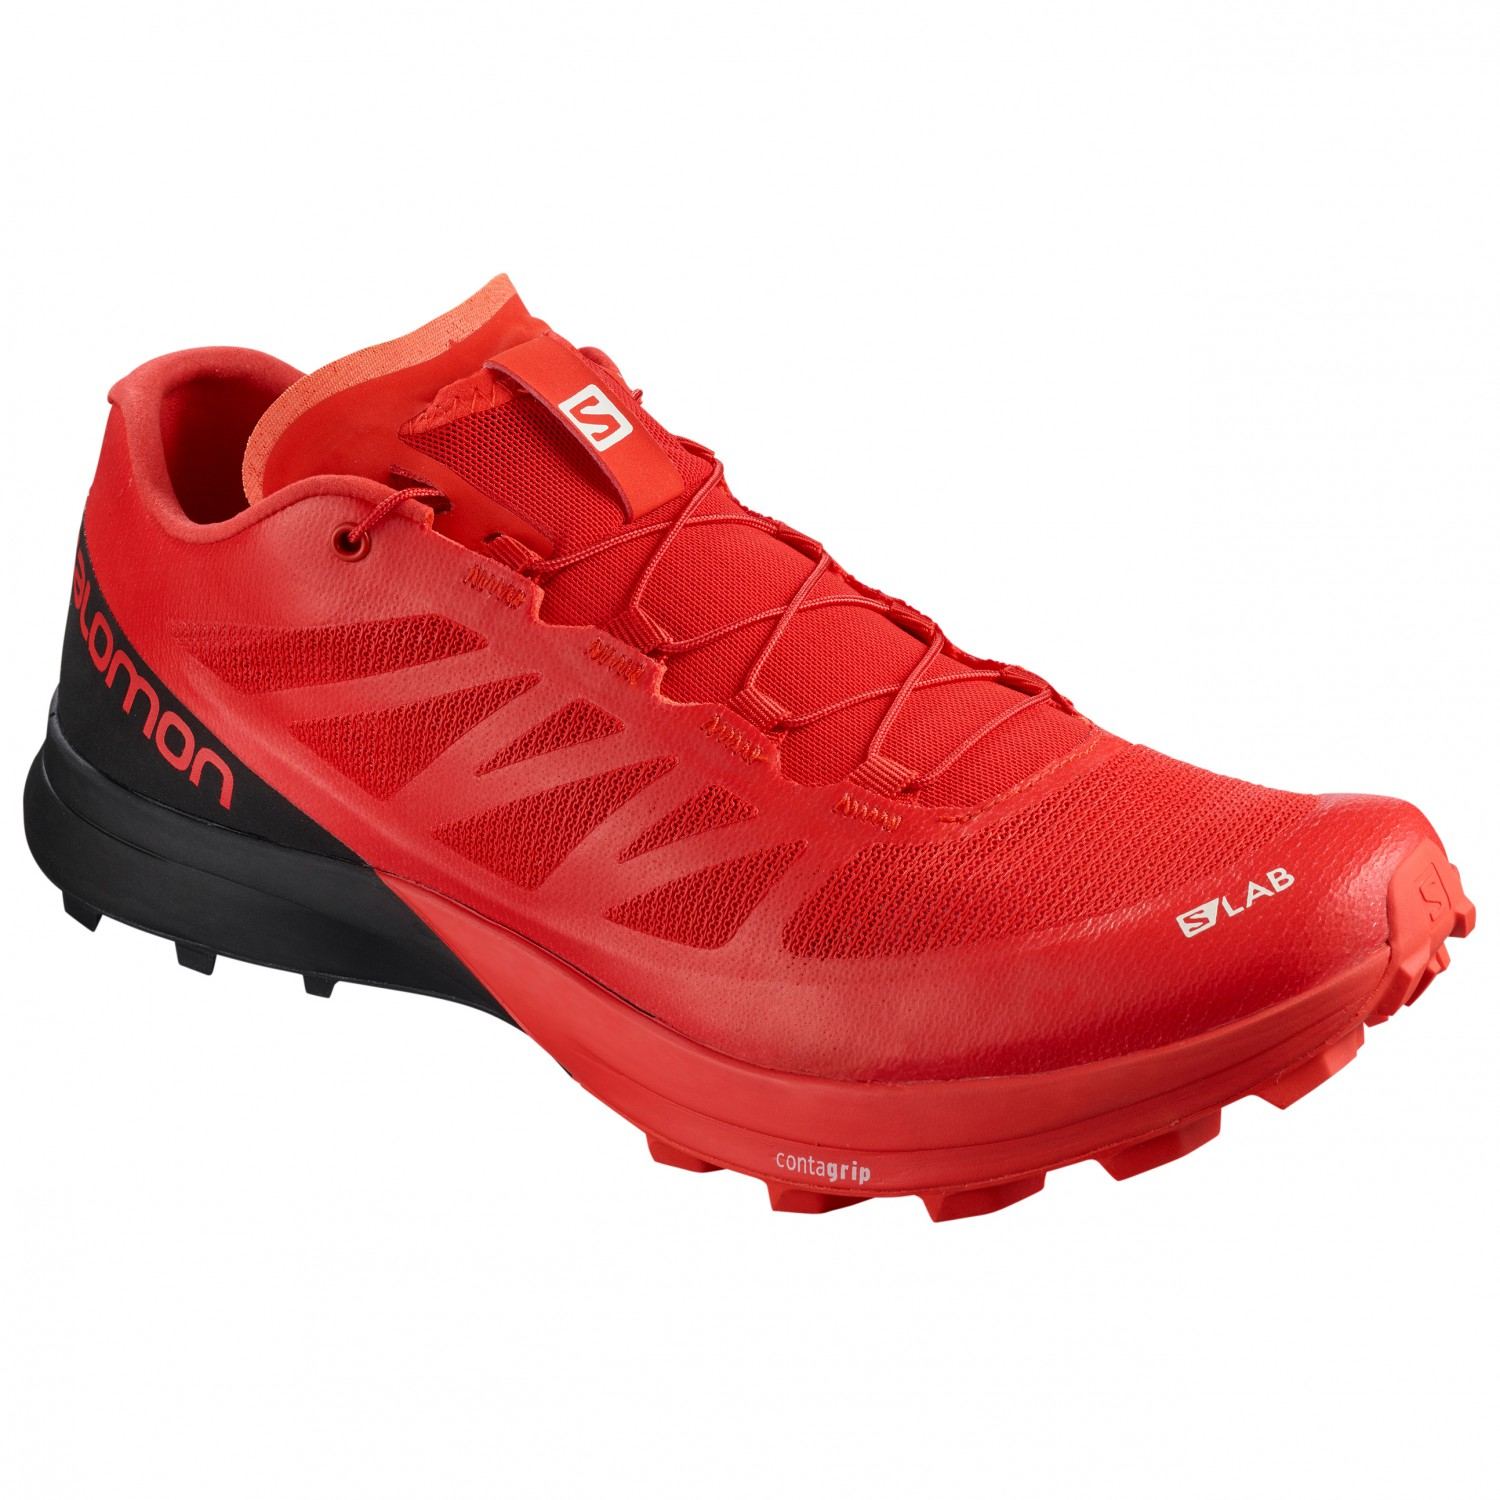 How to replace Salomon boots quicklace system